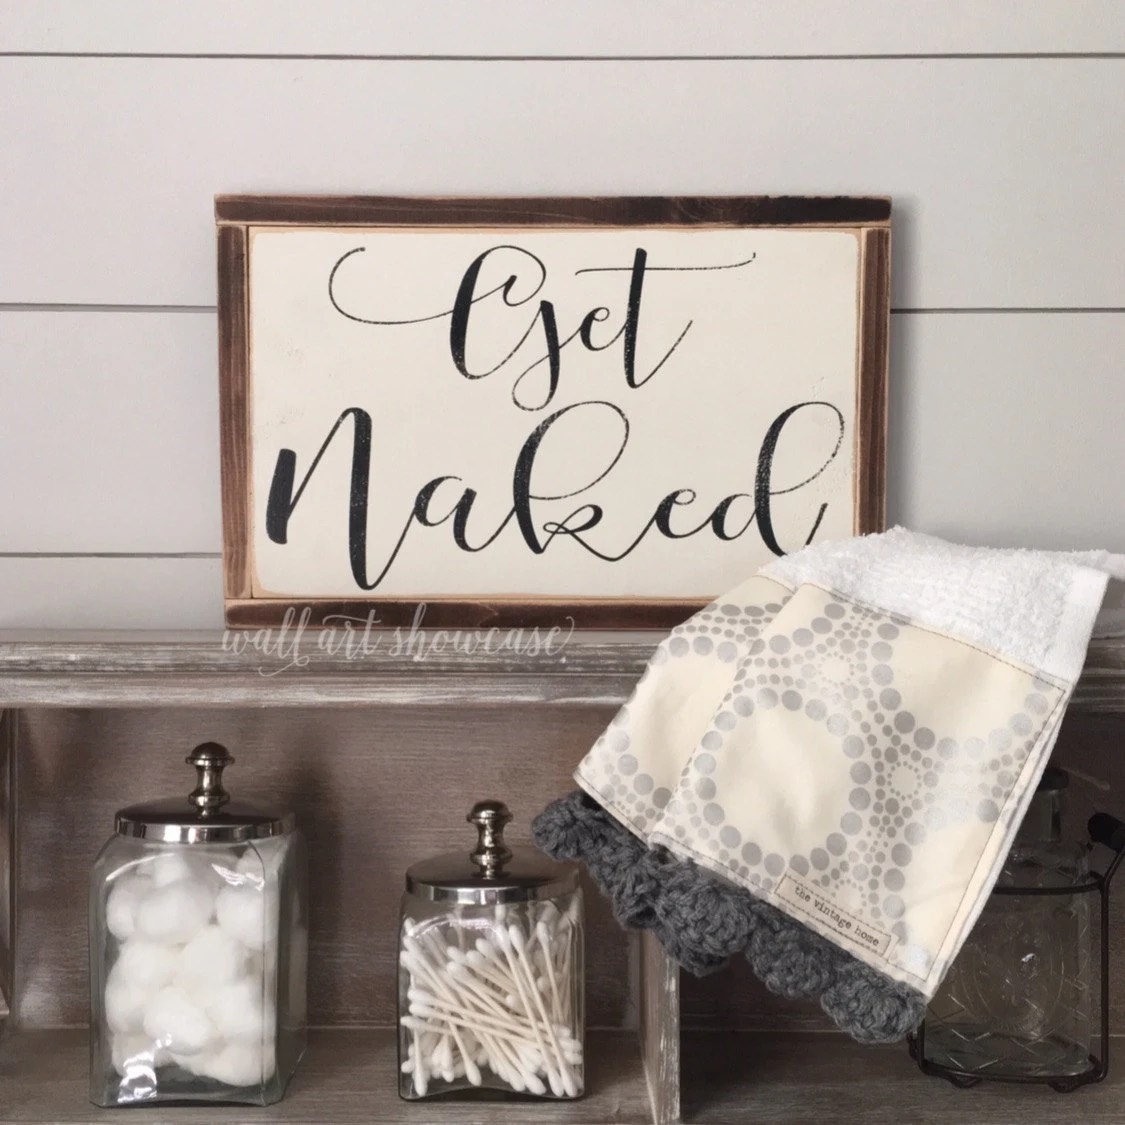 Get Naked Painted Wood Sign Bathroom Decor Distressed